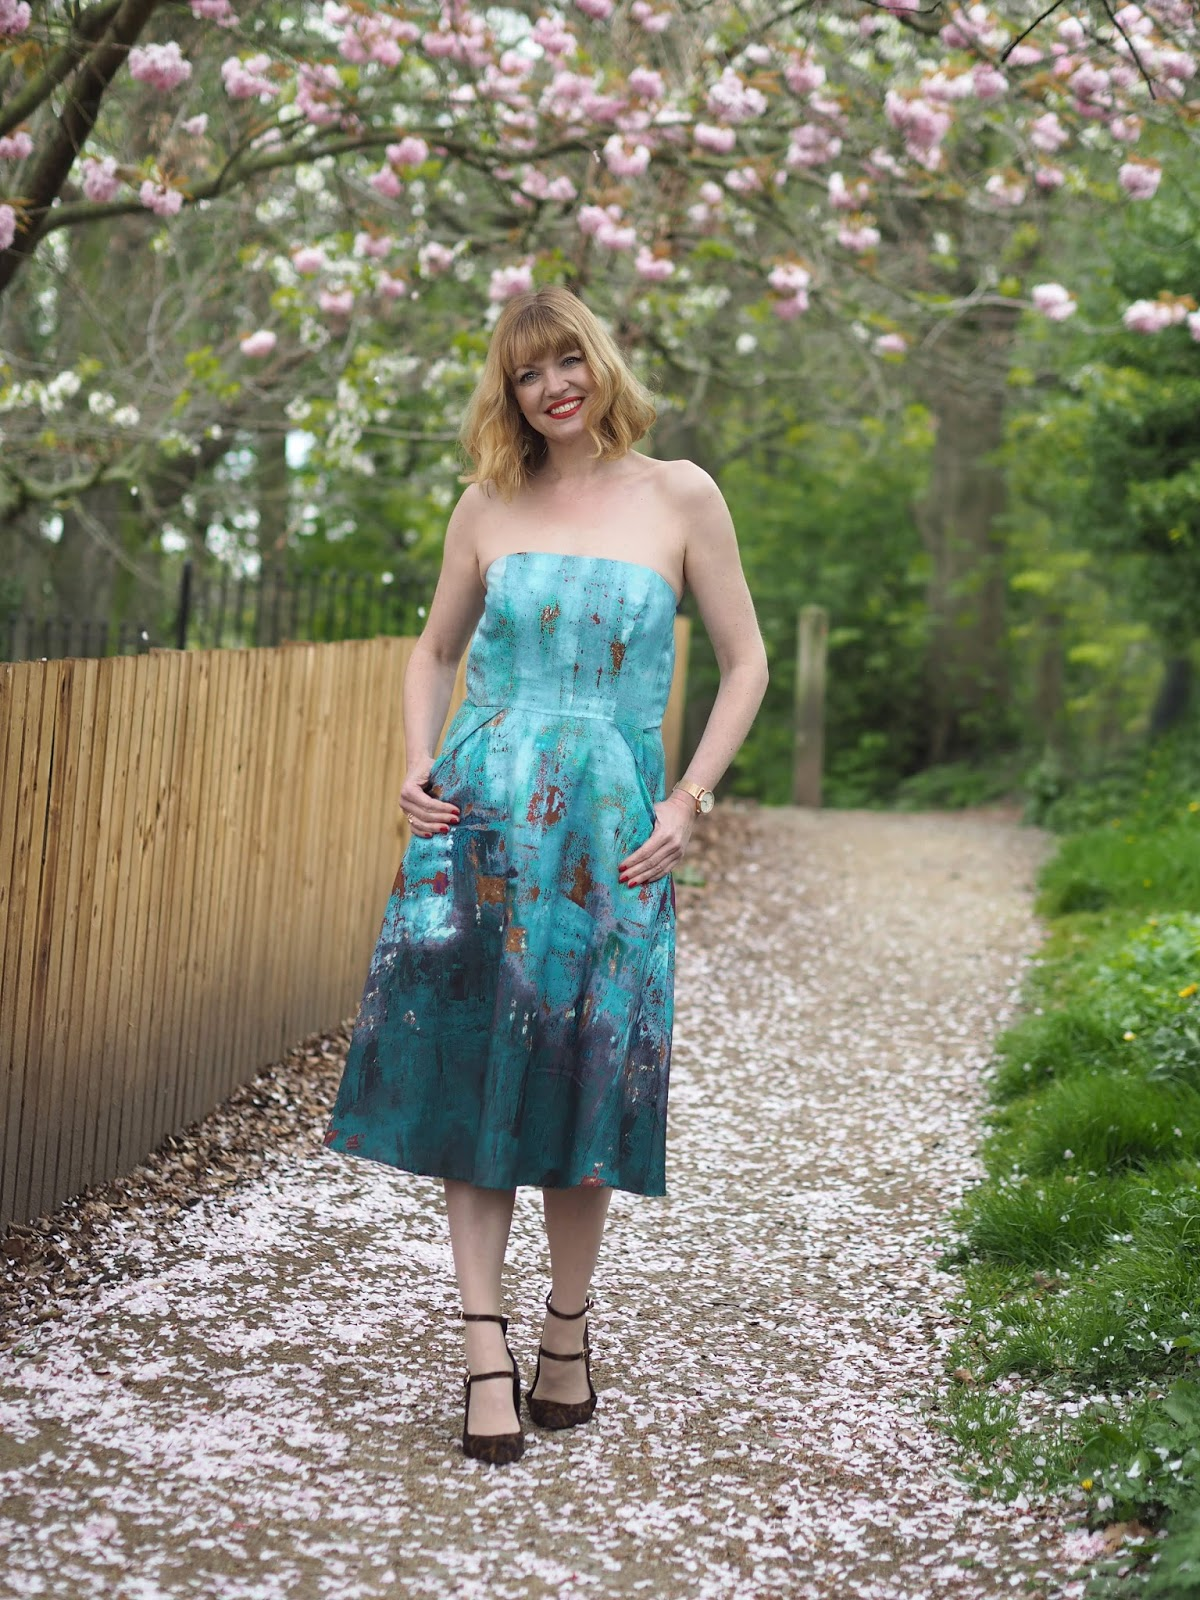 Perfect strapless dress for a spring summer wedding by Alie Street, over 40 fashion